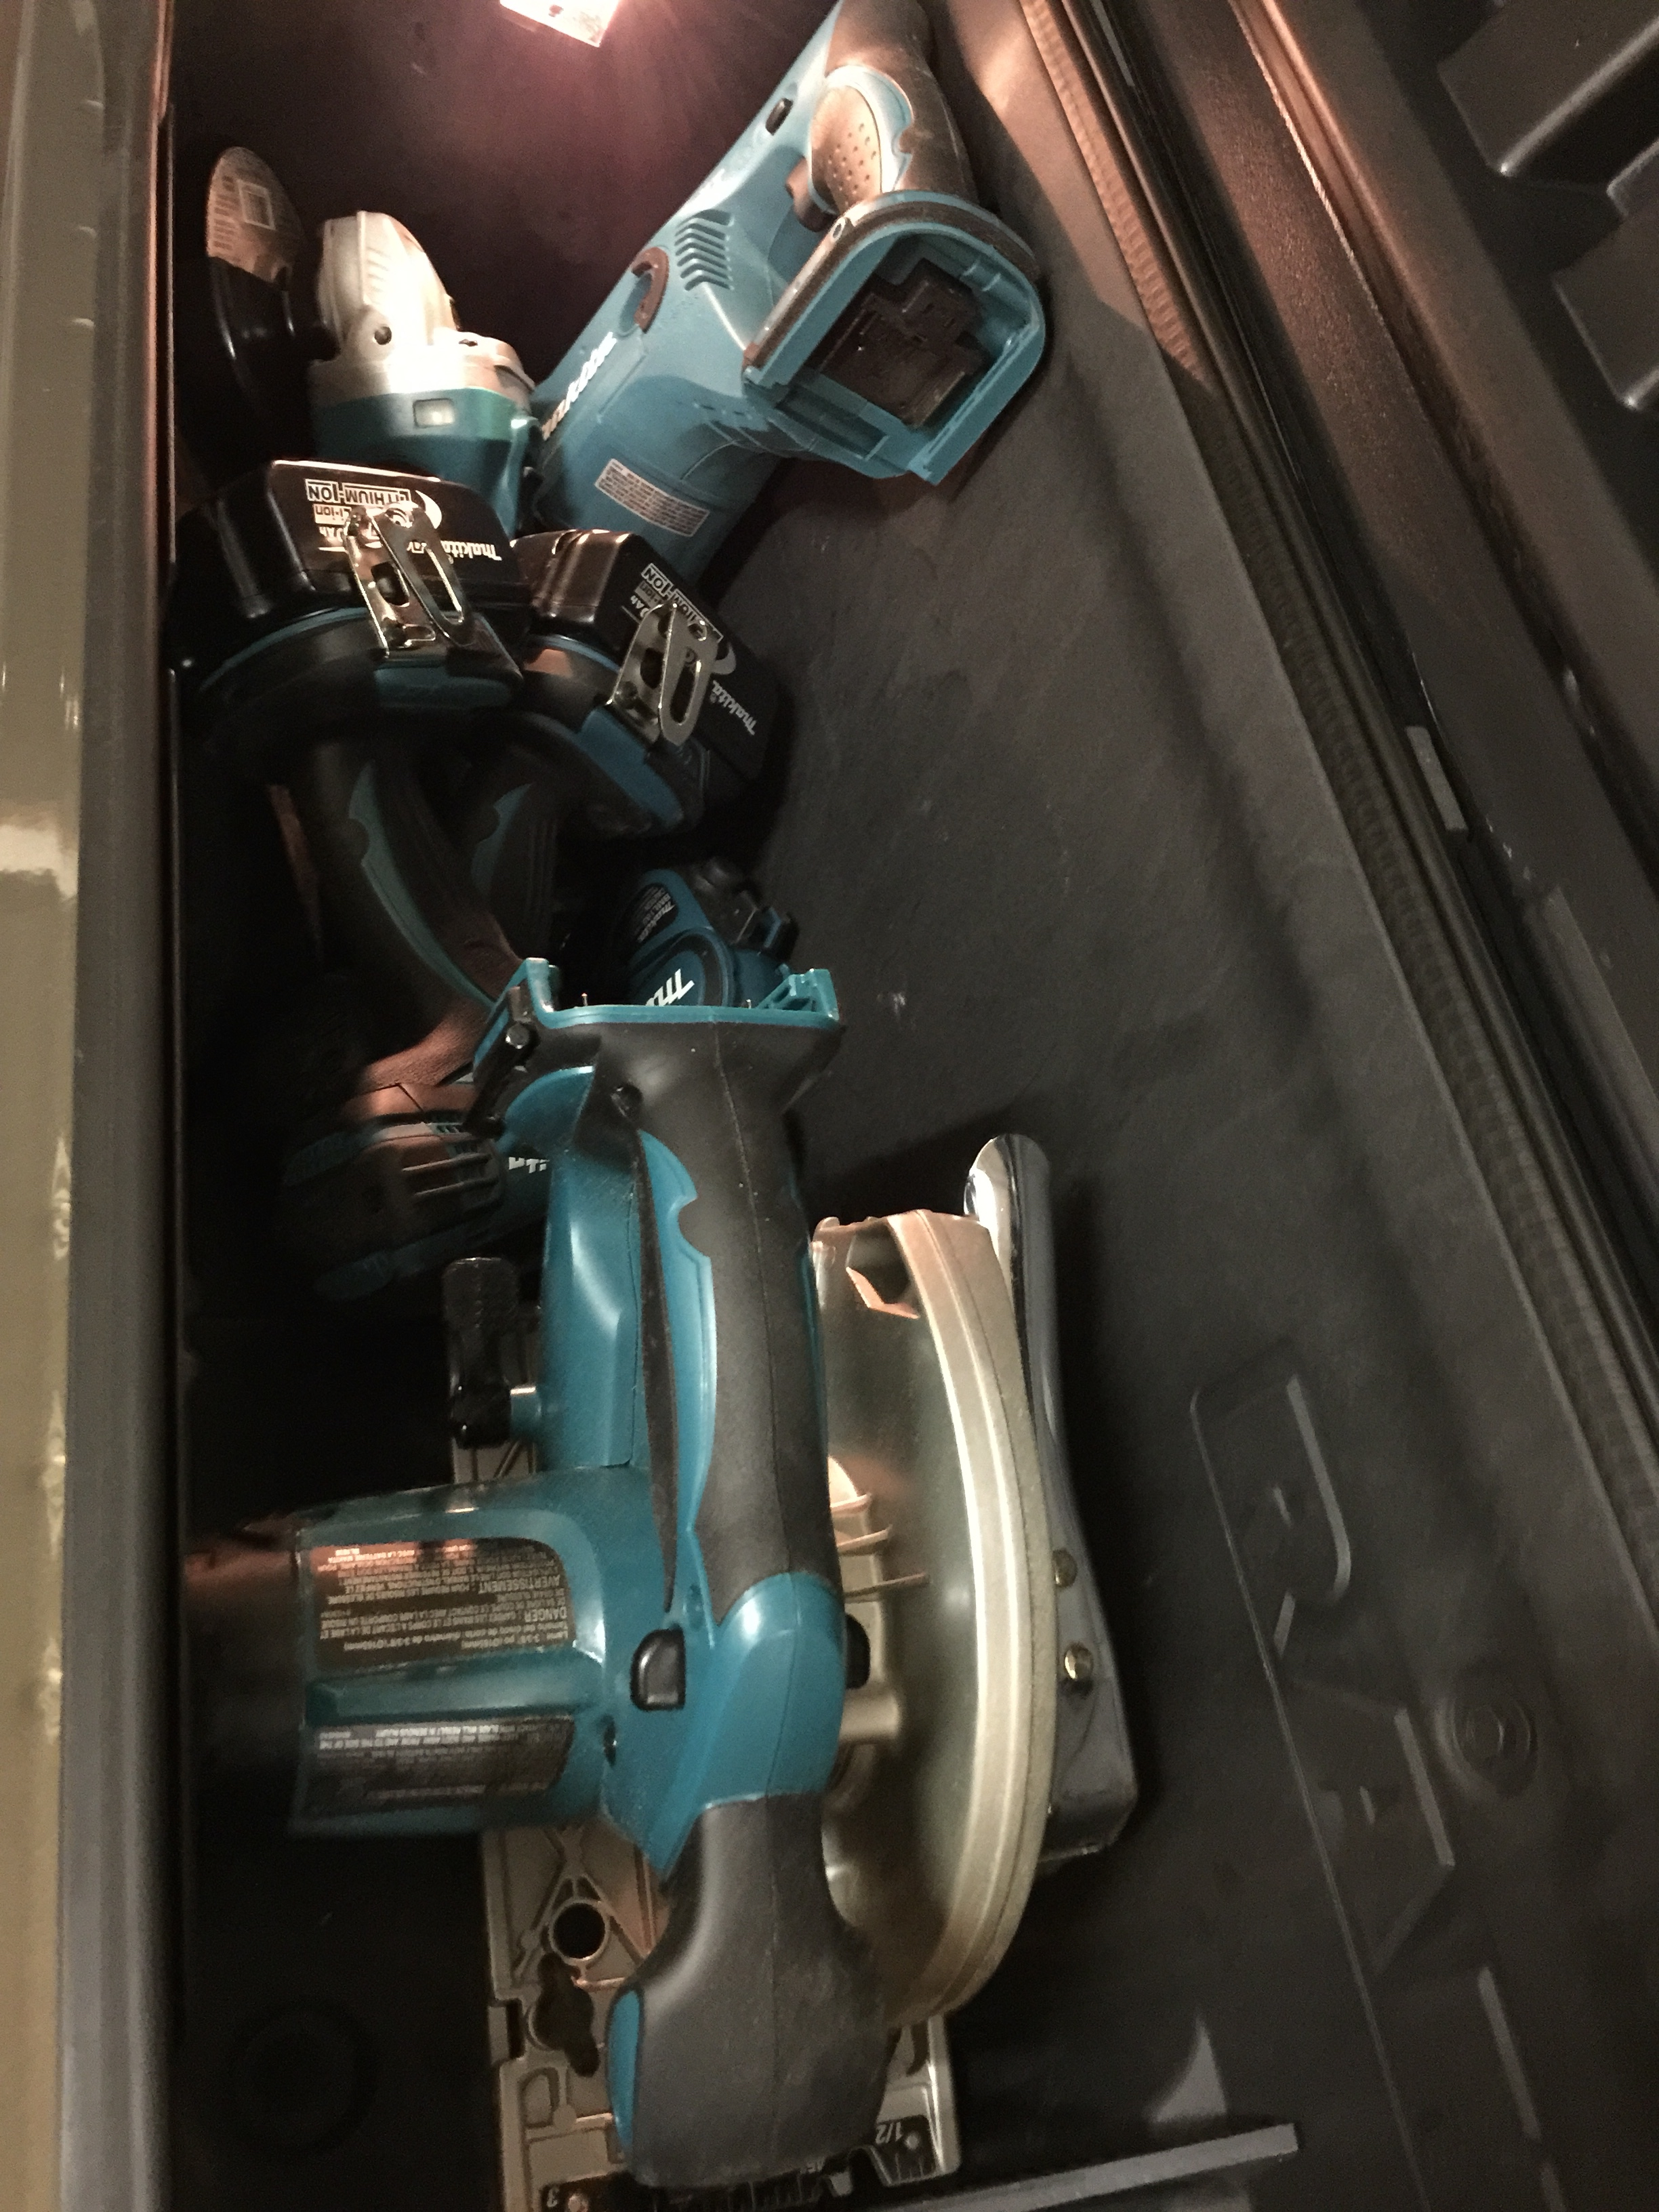 project install 12v outlet in rambox 2014 ram 1500 fuse box location 2014 ram 1500 fuse box location 2014 ram 1500 fuse box location 2014 ram 1500 fuse box location